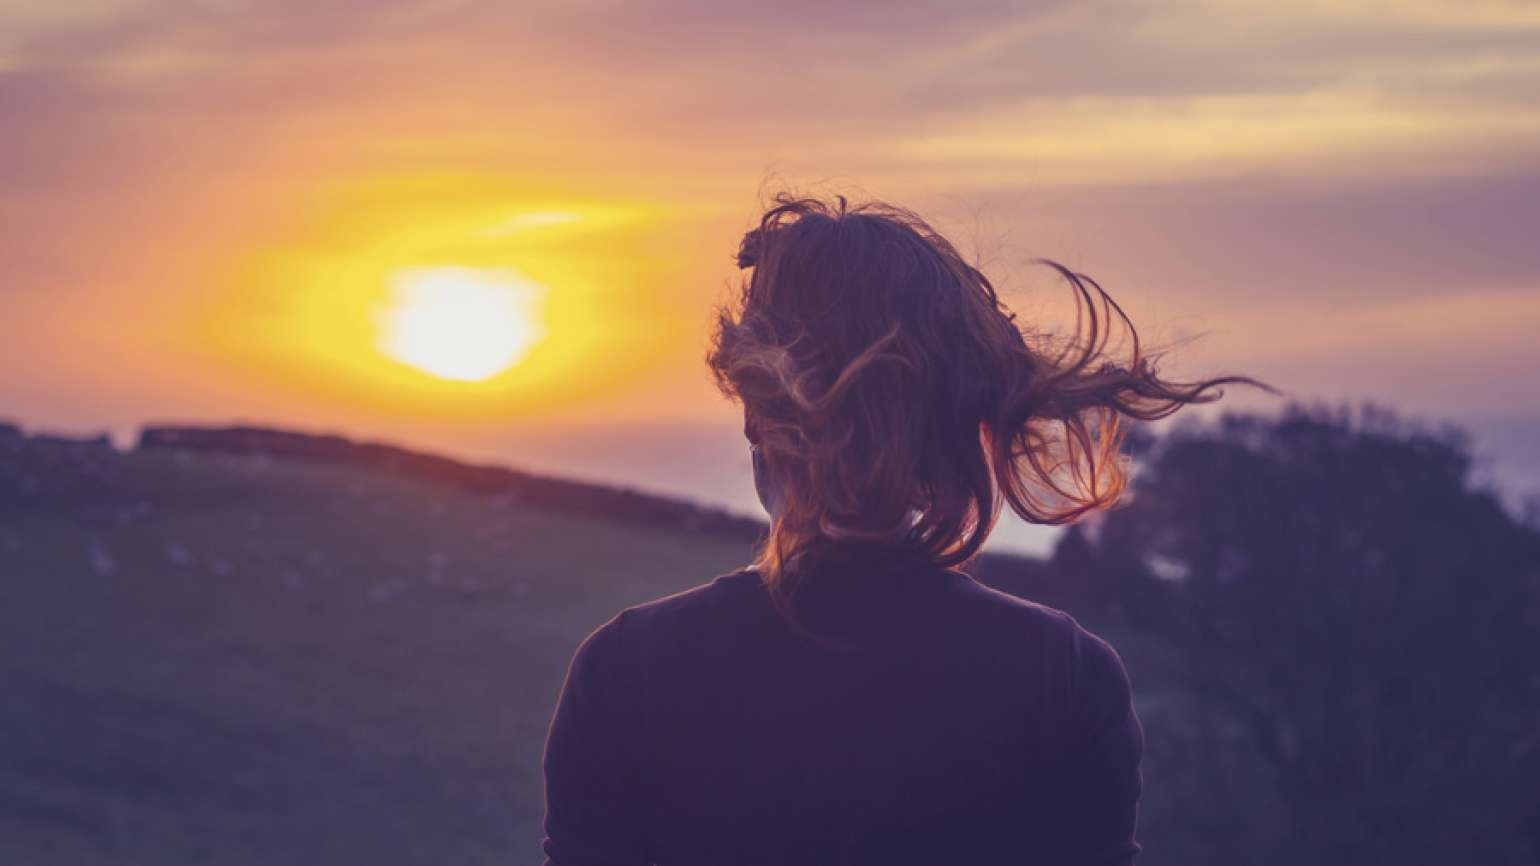 Woman looking at the sunset with wonder